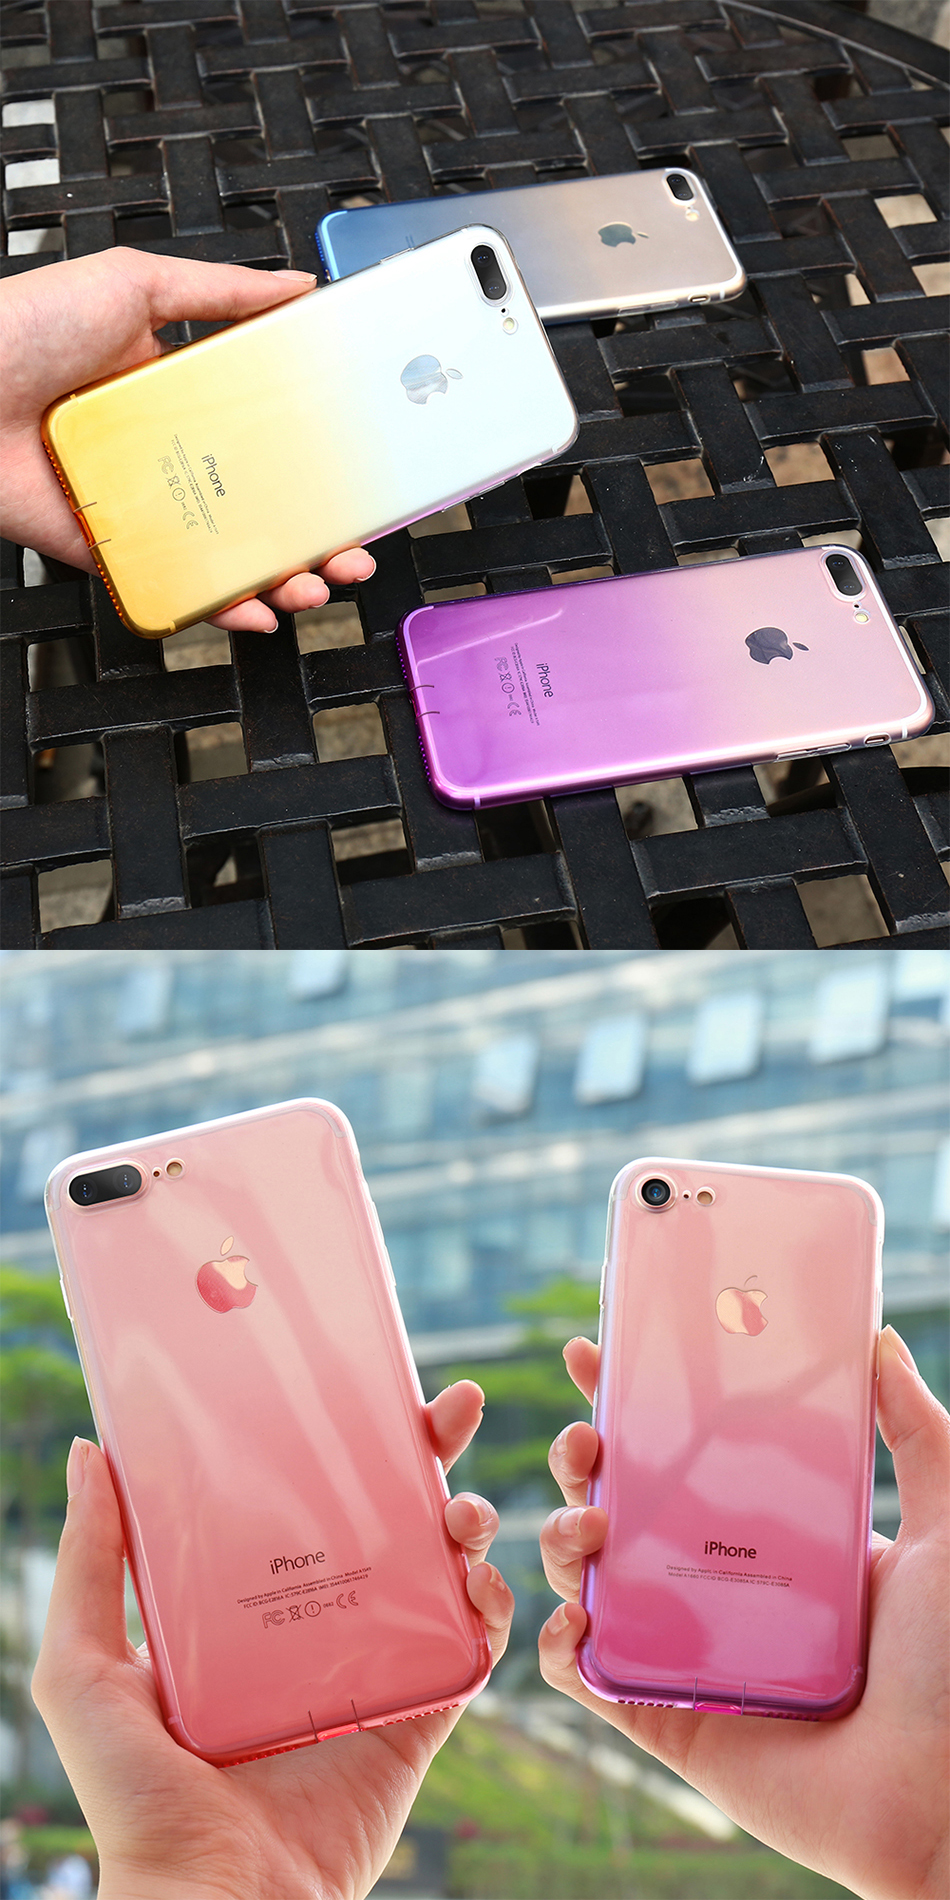 FLOVEME Gradient Phone Case For iPhone 7 6 6S Plus 5 5S SE Luxury Silicon Soft TPU Thin Back Cover For iPhone 5 6S 7 Plus Cases (13)